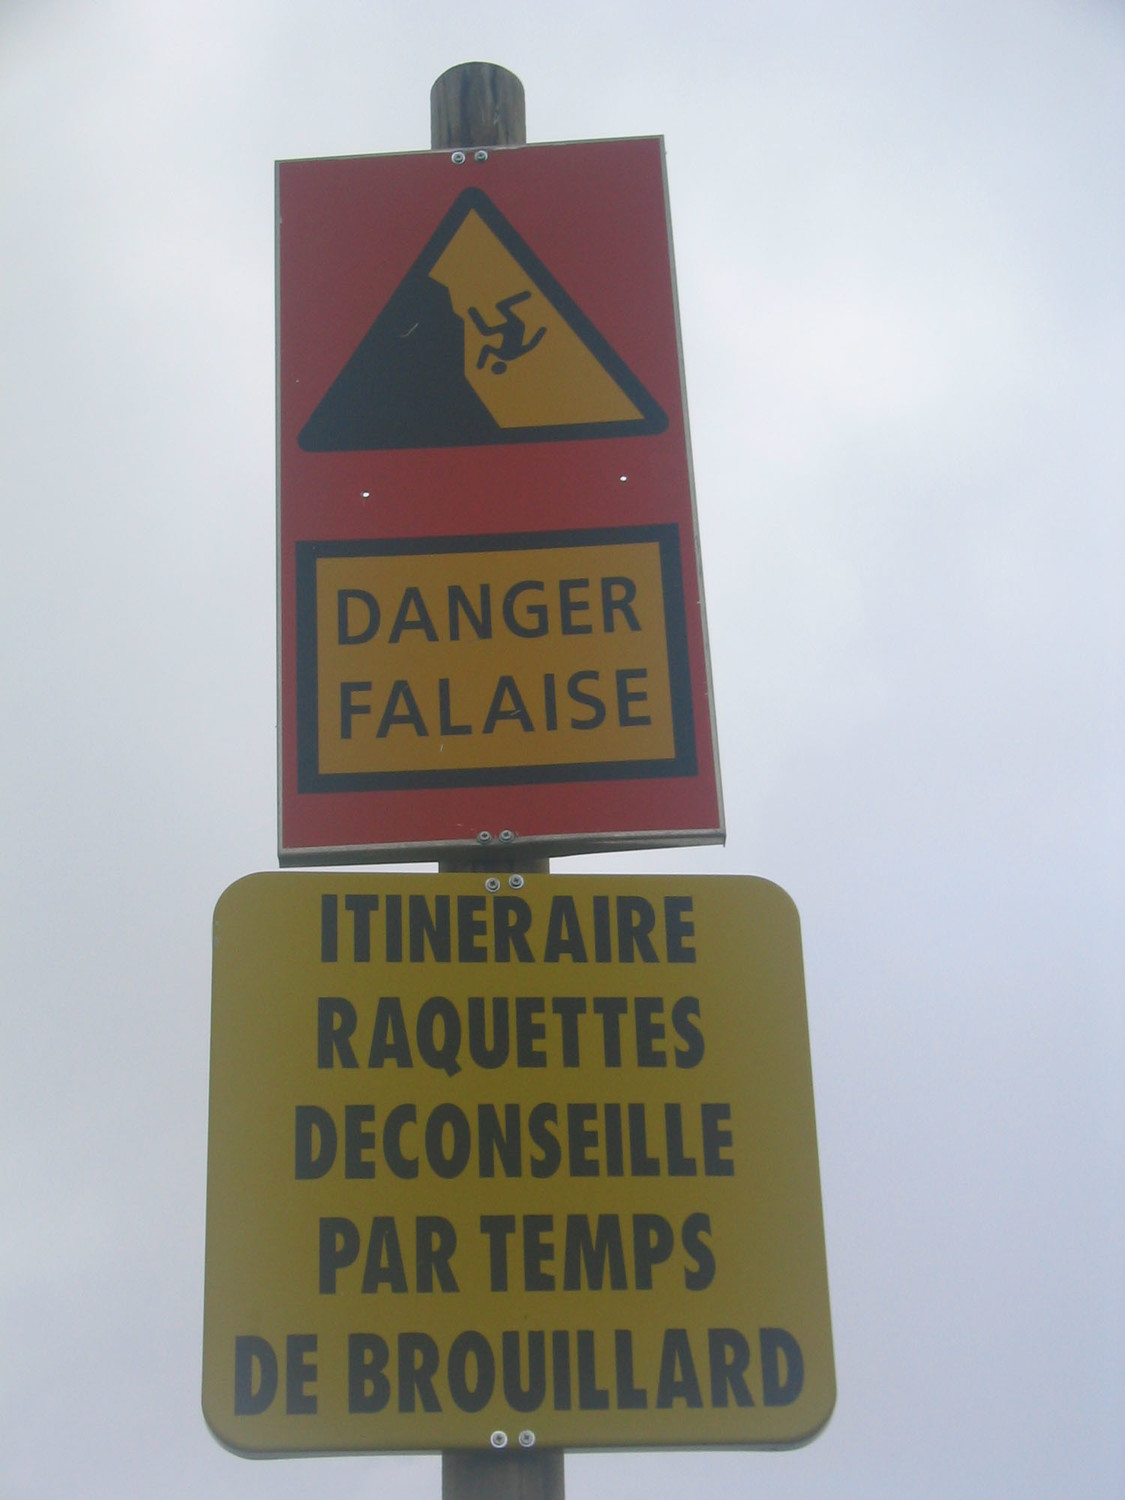 attention falaise!